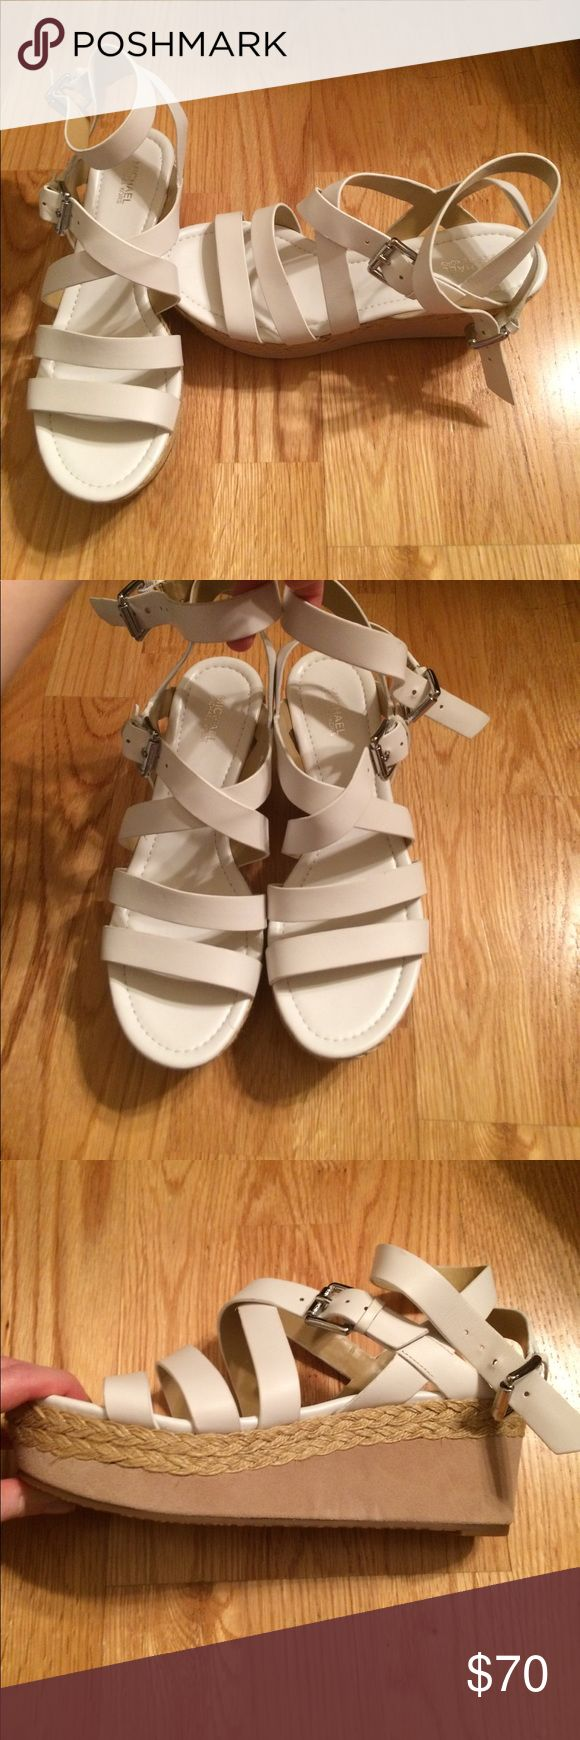 Shoes. Never been worn - White Wedge Heels, small strap up leg. MICHAEL Michael Kors Shoes Wedges